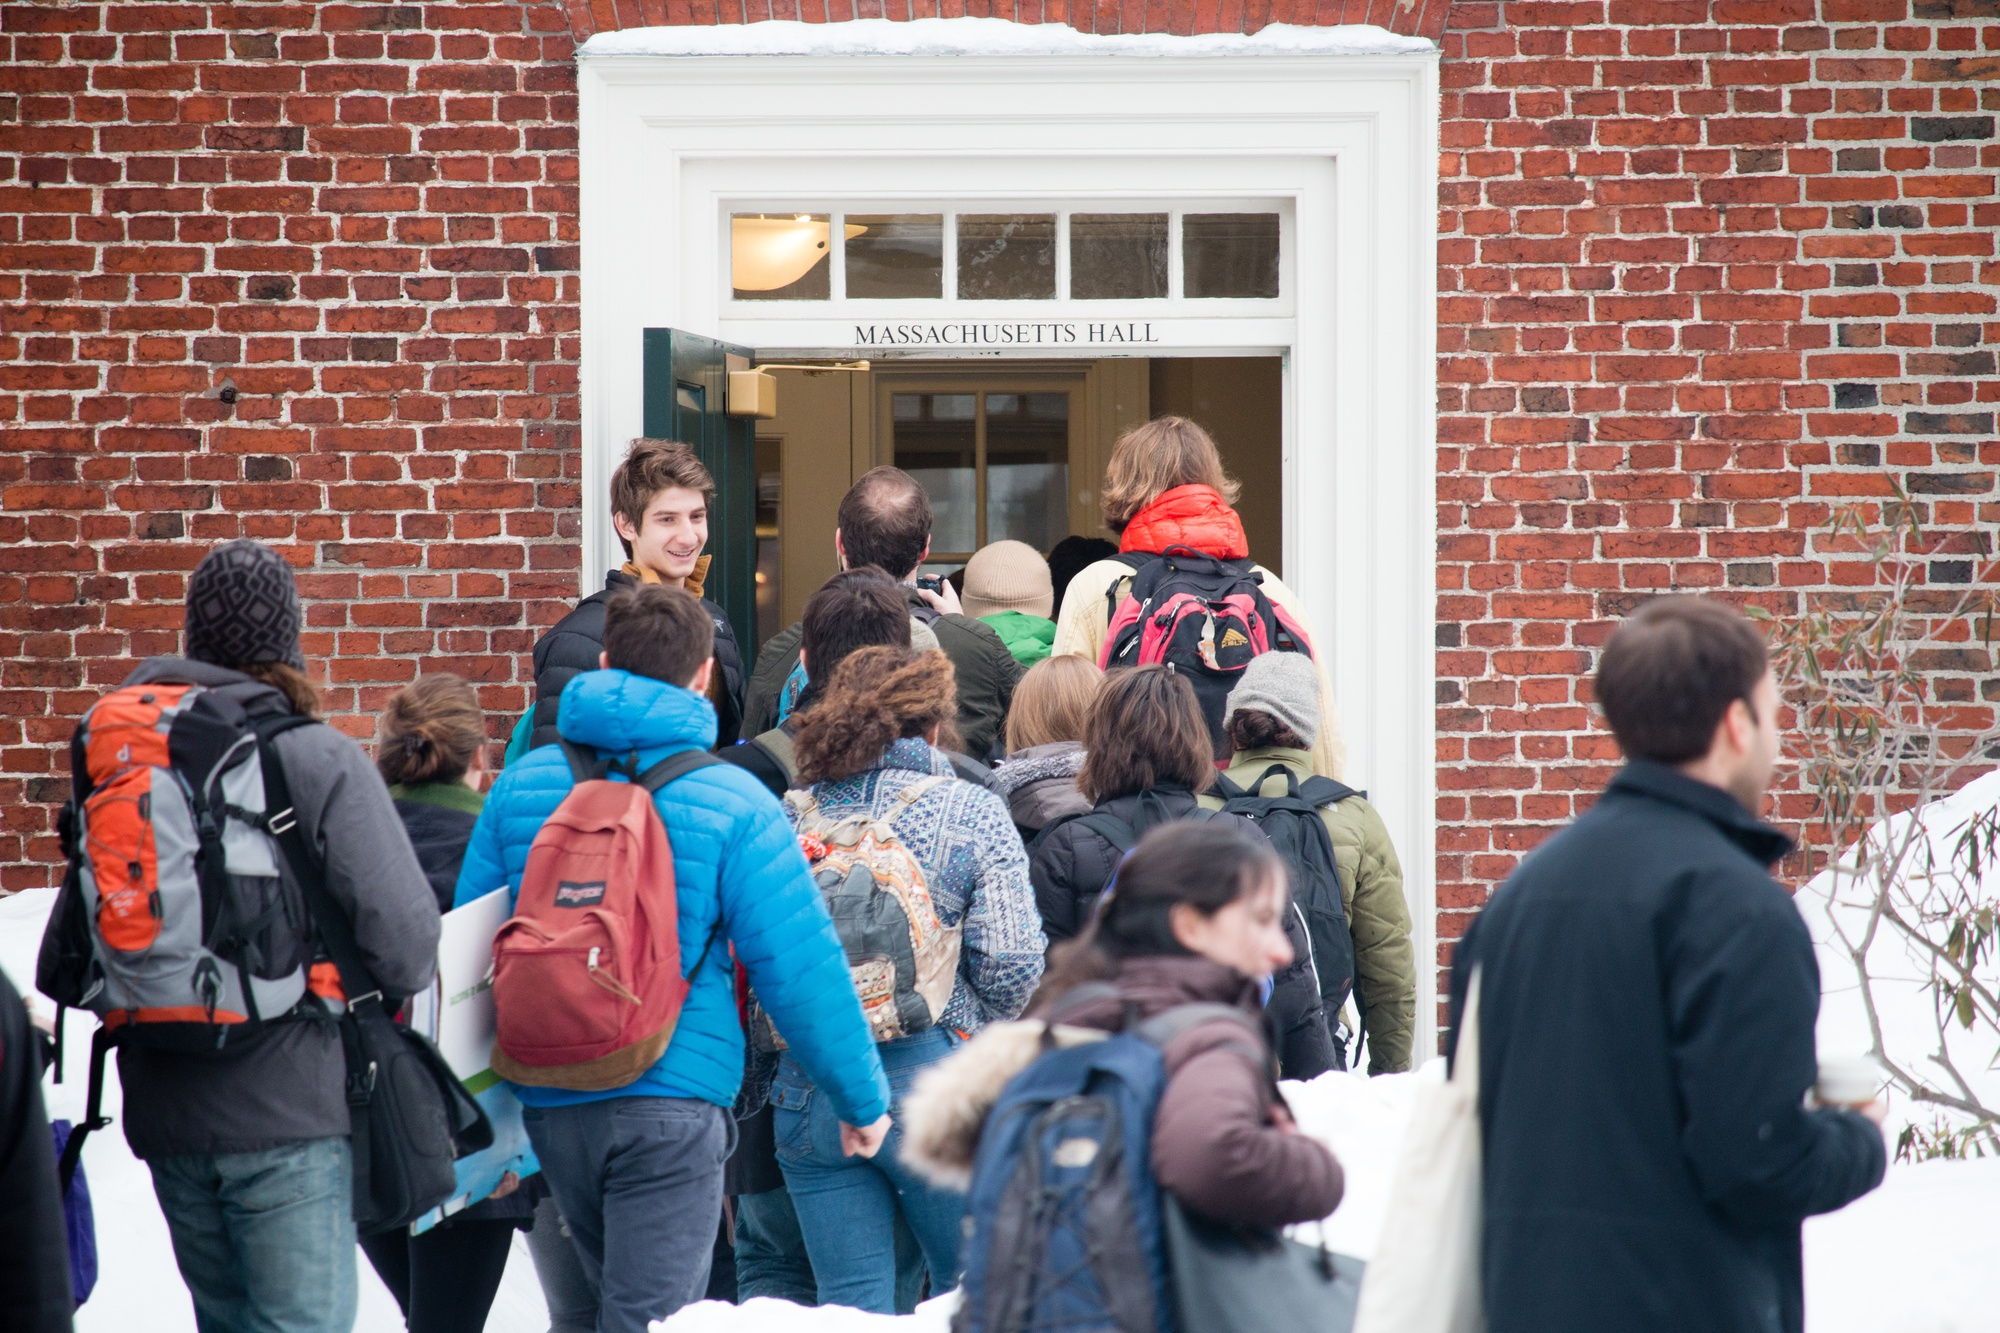 On Feb. 12, at 10AM, around 40 students from Divest Harvard occupied Mass Hall, home to the office of University President Drew Faust .